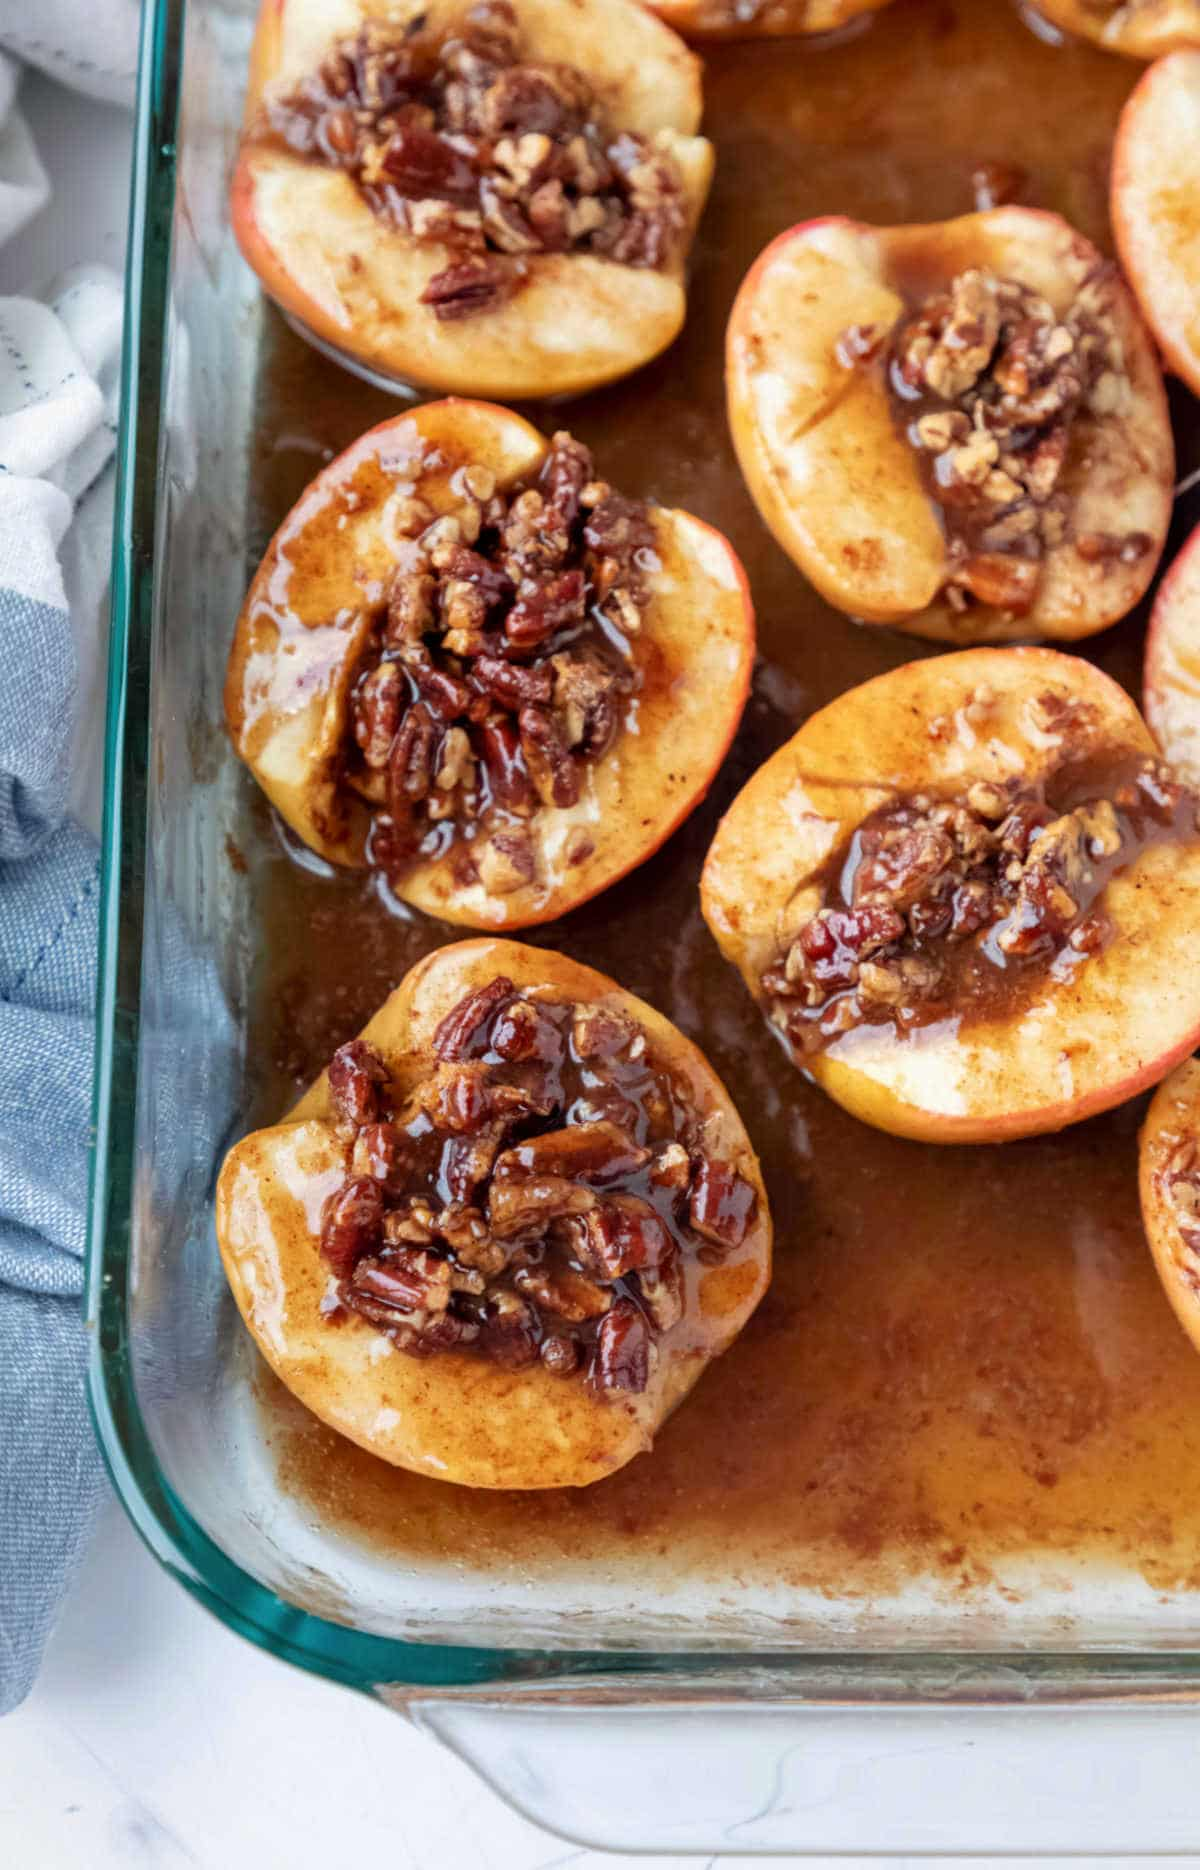 Baked apples in glass baking dish.